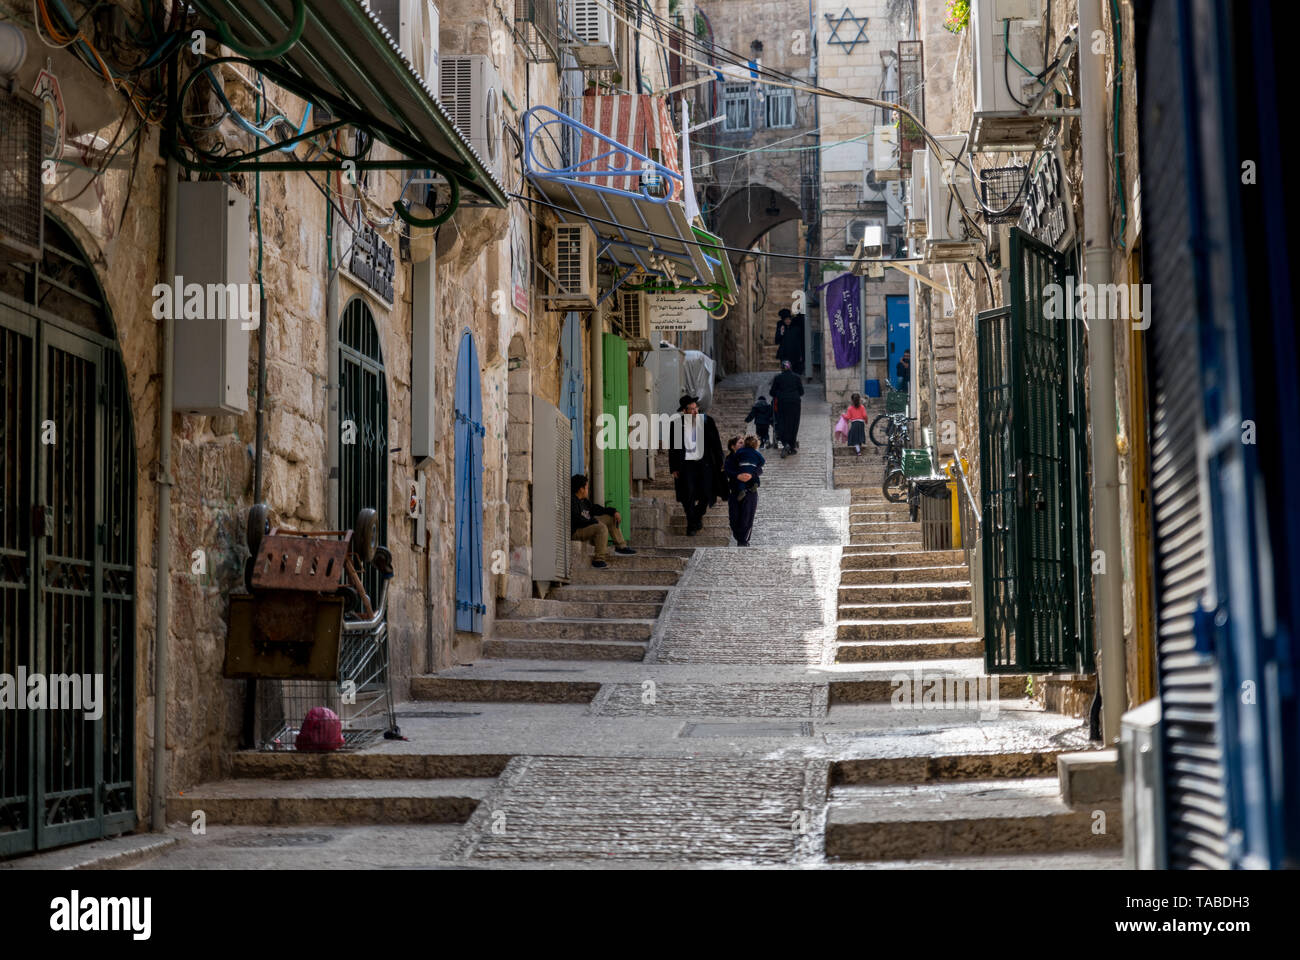 Jerusalem,Israel,27-03-2019:jew people walking in the streets of jerusalem, jerusalem is the religious city of israel - Stock Image